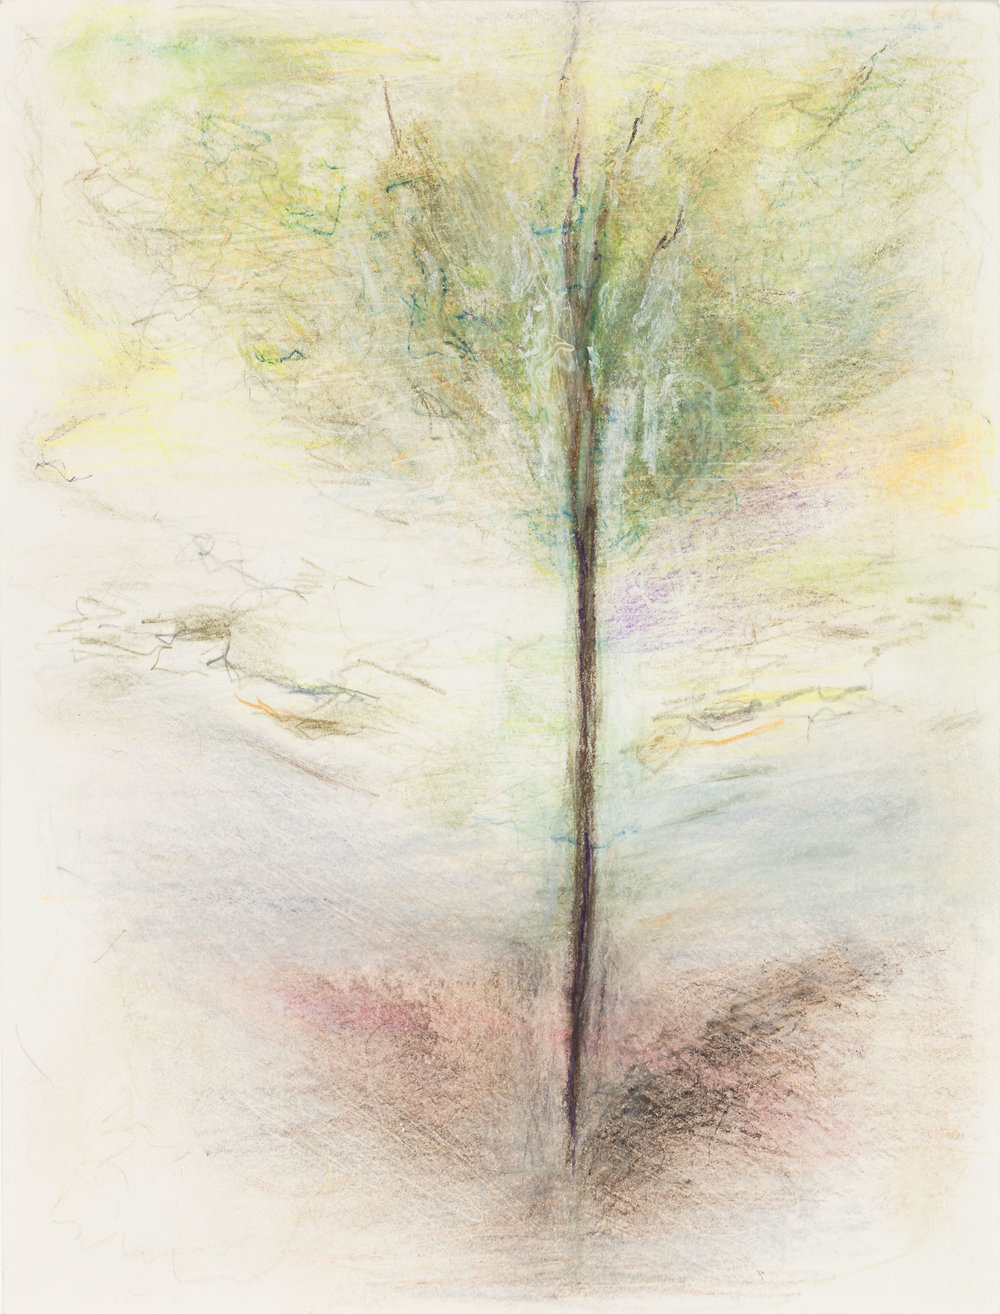 Hedda Sterne, The Flying Tree, 1993, Colored pencil, pastel on paper, 12 in. x 9 in. (30.48 cm x 22.86 cm)